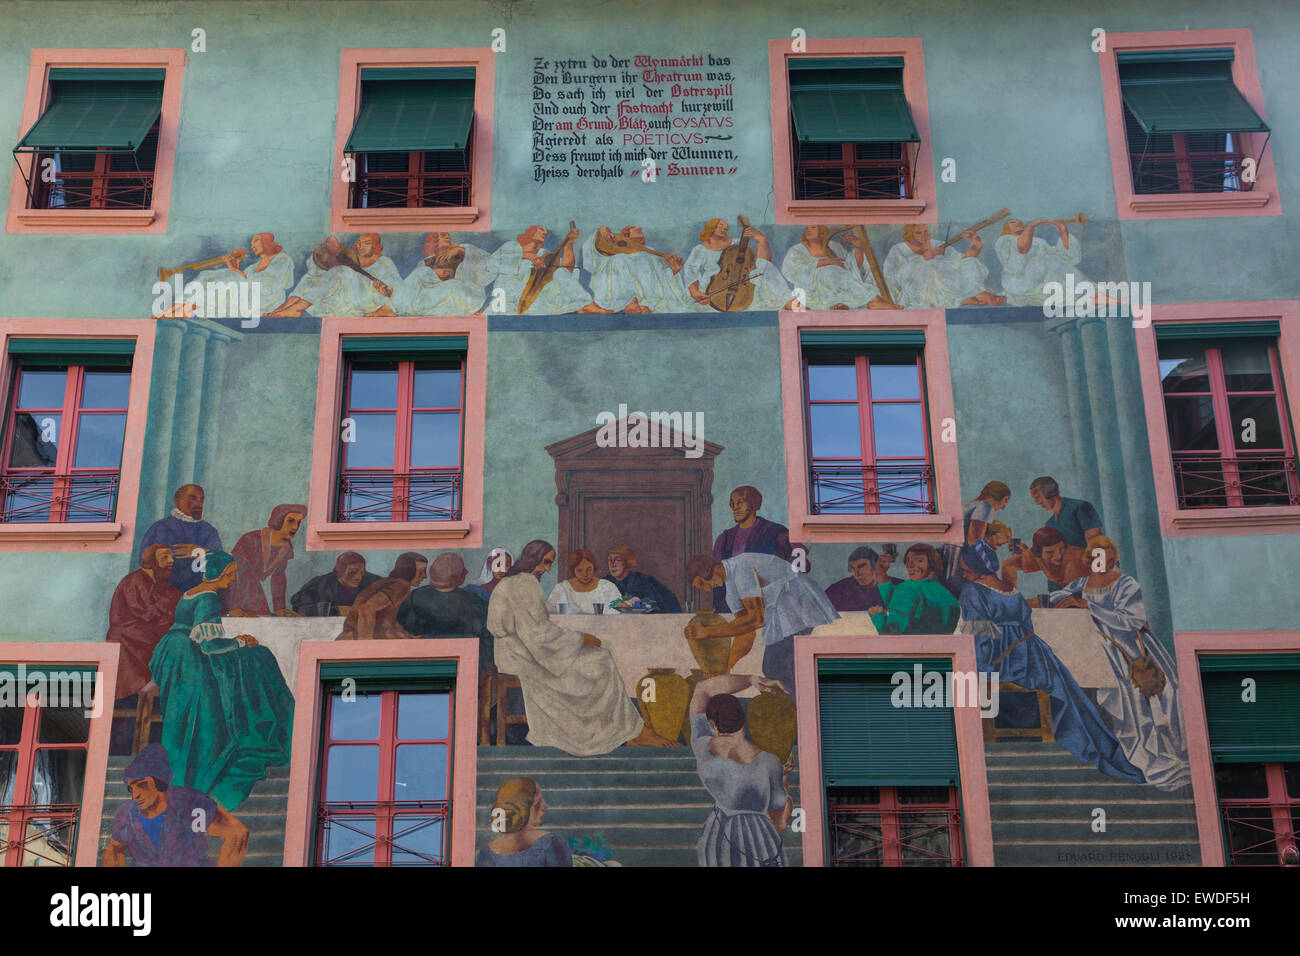 Last Supper Mural Stock Photos Last Supper Mural Stock Images Alamy